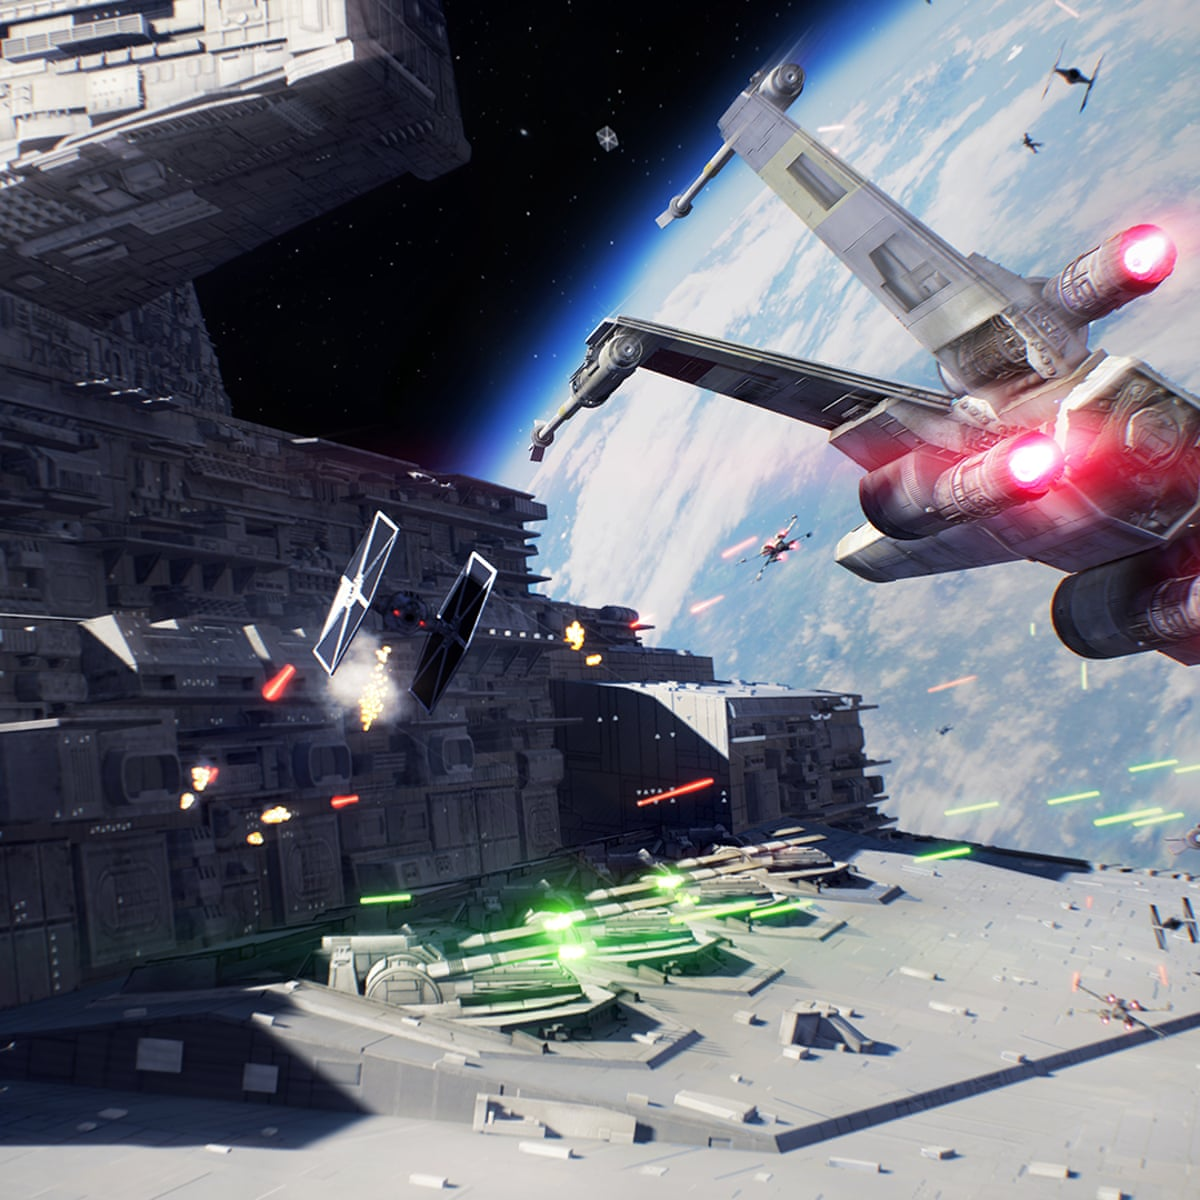 Star Wars Battlefront Ii Will The Sequel Have The Force The Original Lacked Games The Guardian